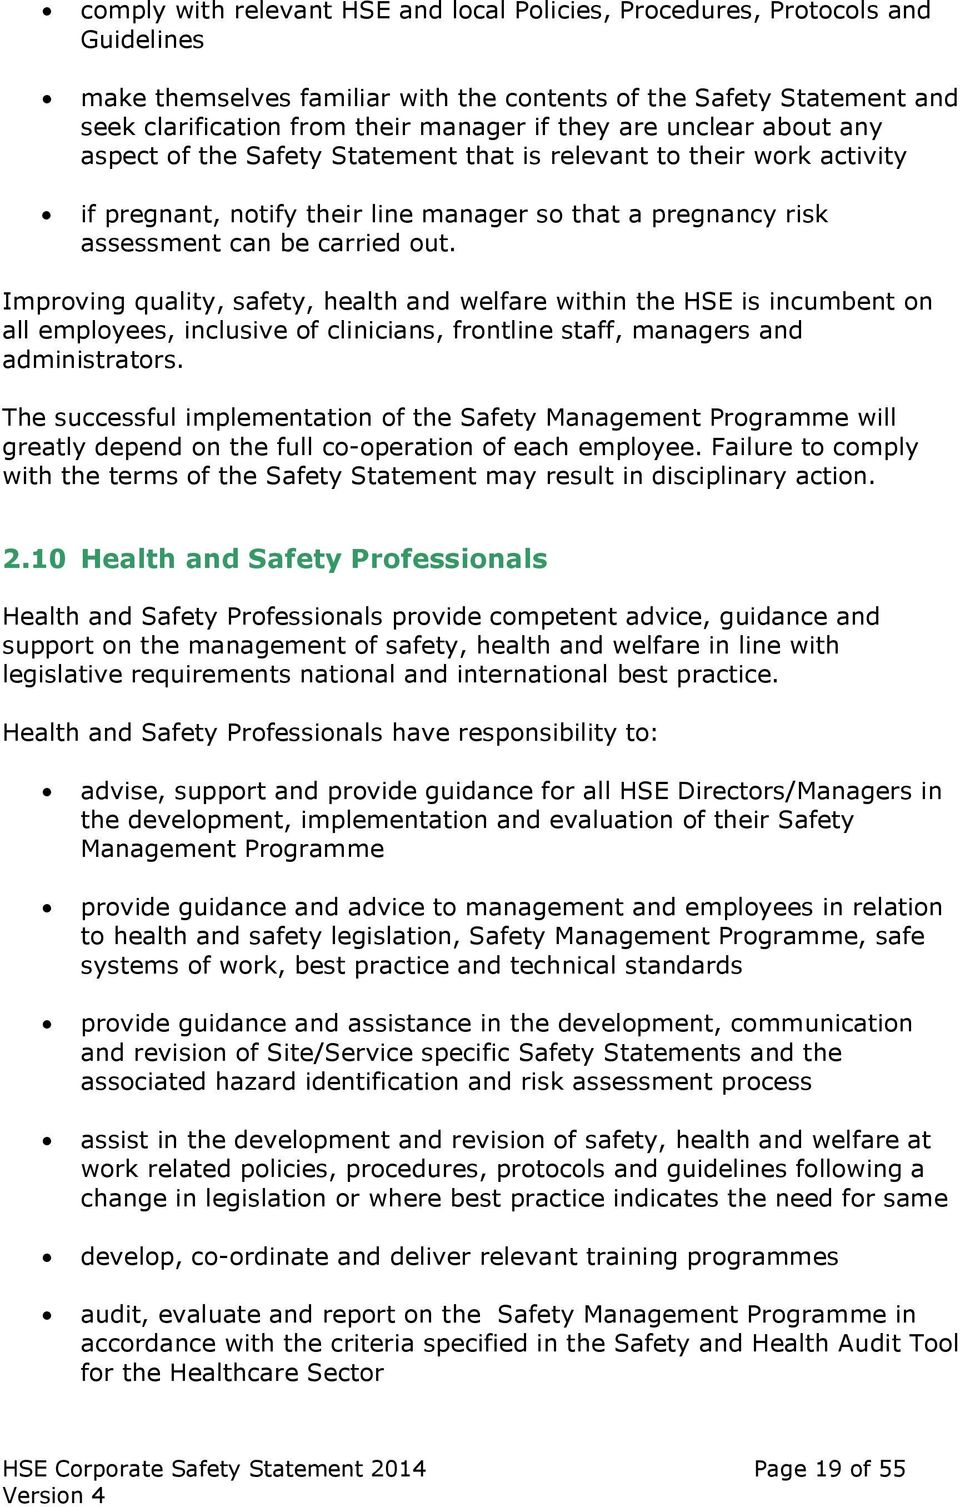 Improving quality, safety, health and welfare within the HSE is incumbent on all employees, inclusive of clinicians, frontline staff, managers and administrators.